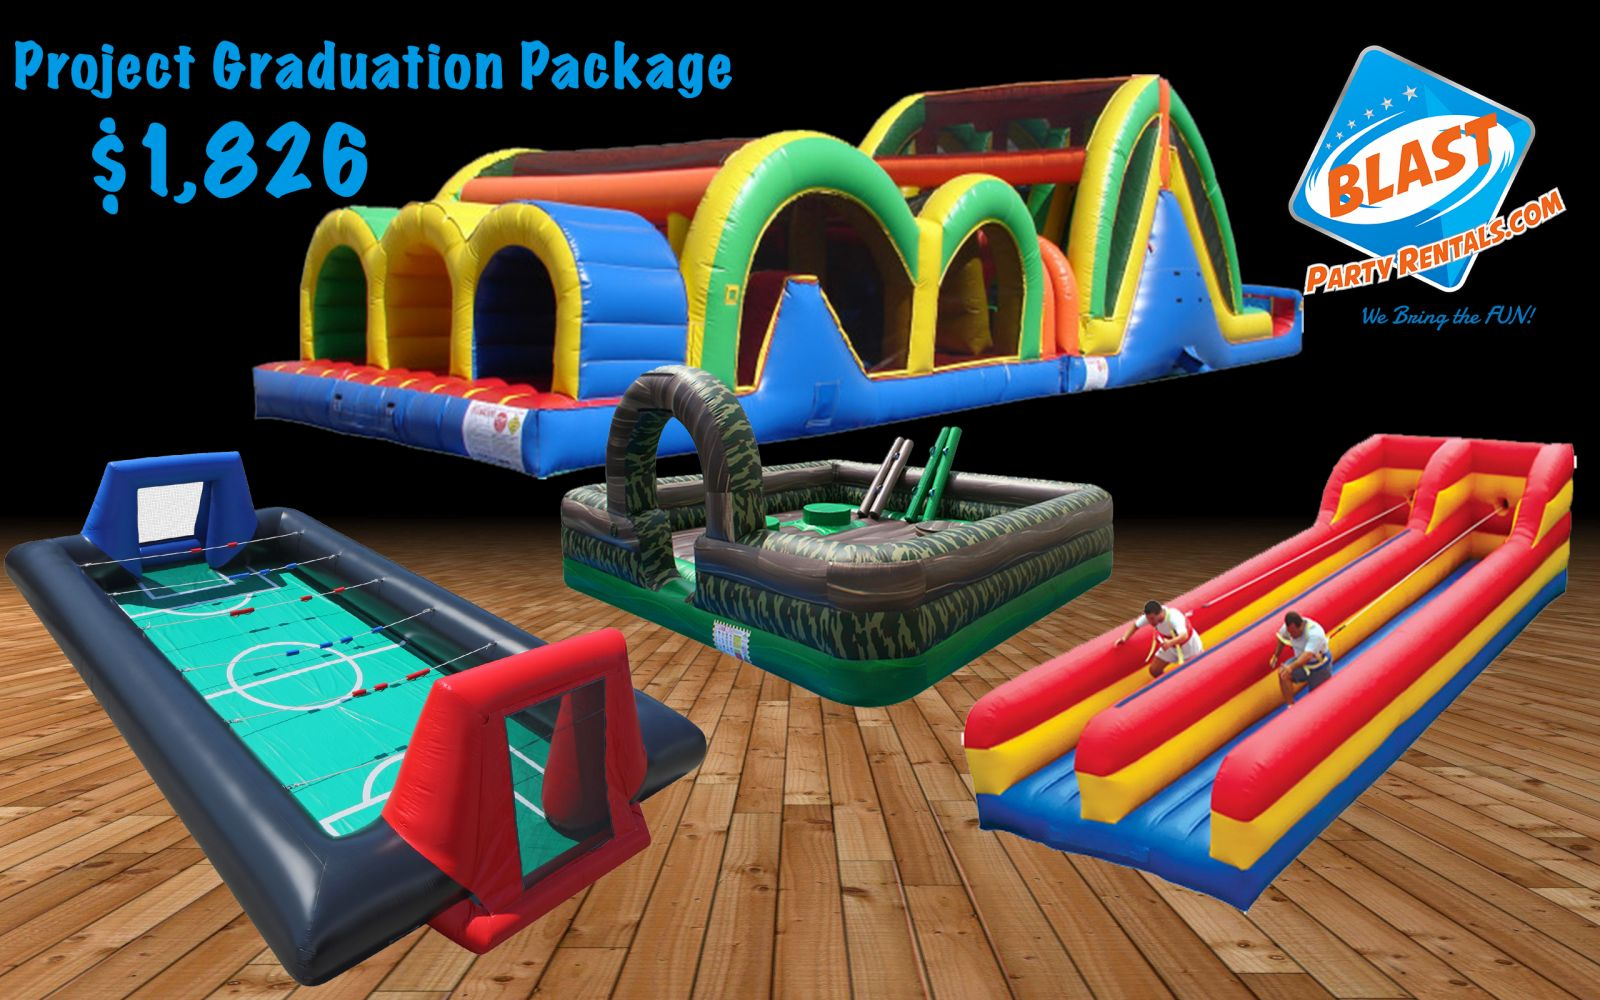 Project Graduation rental package